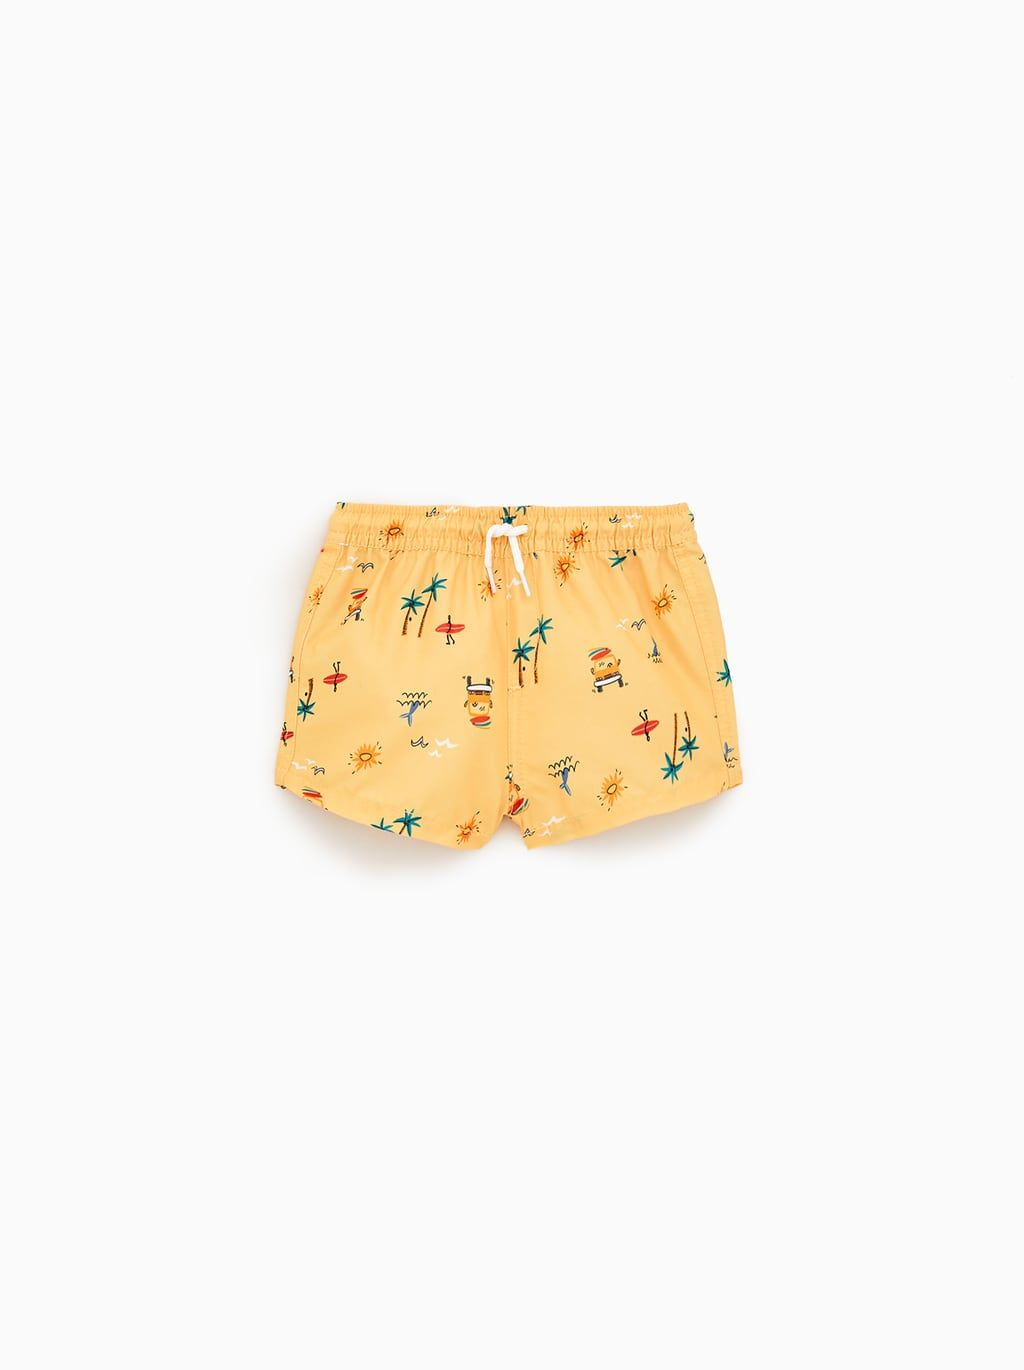 Camper Van Swim Shorts Baby Boy Swimwear Baby Boy Swim